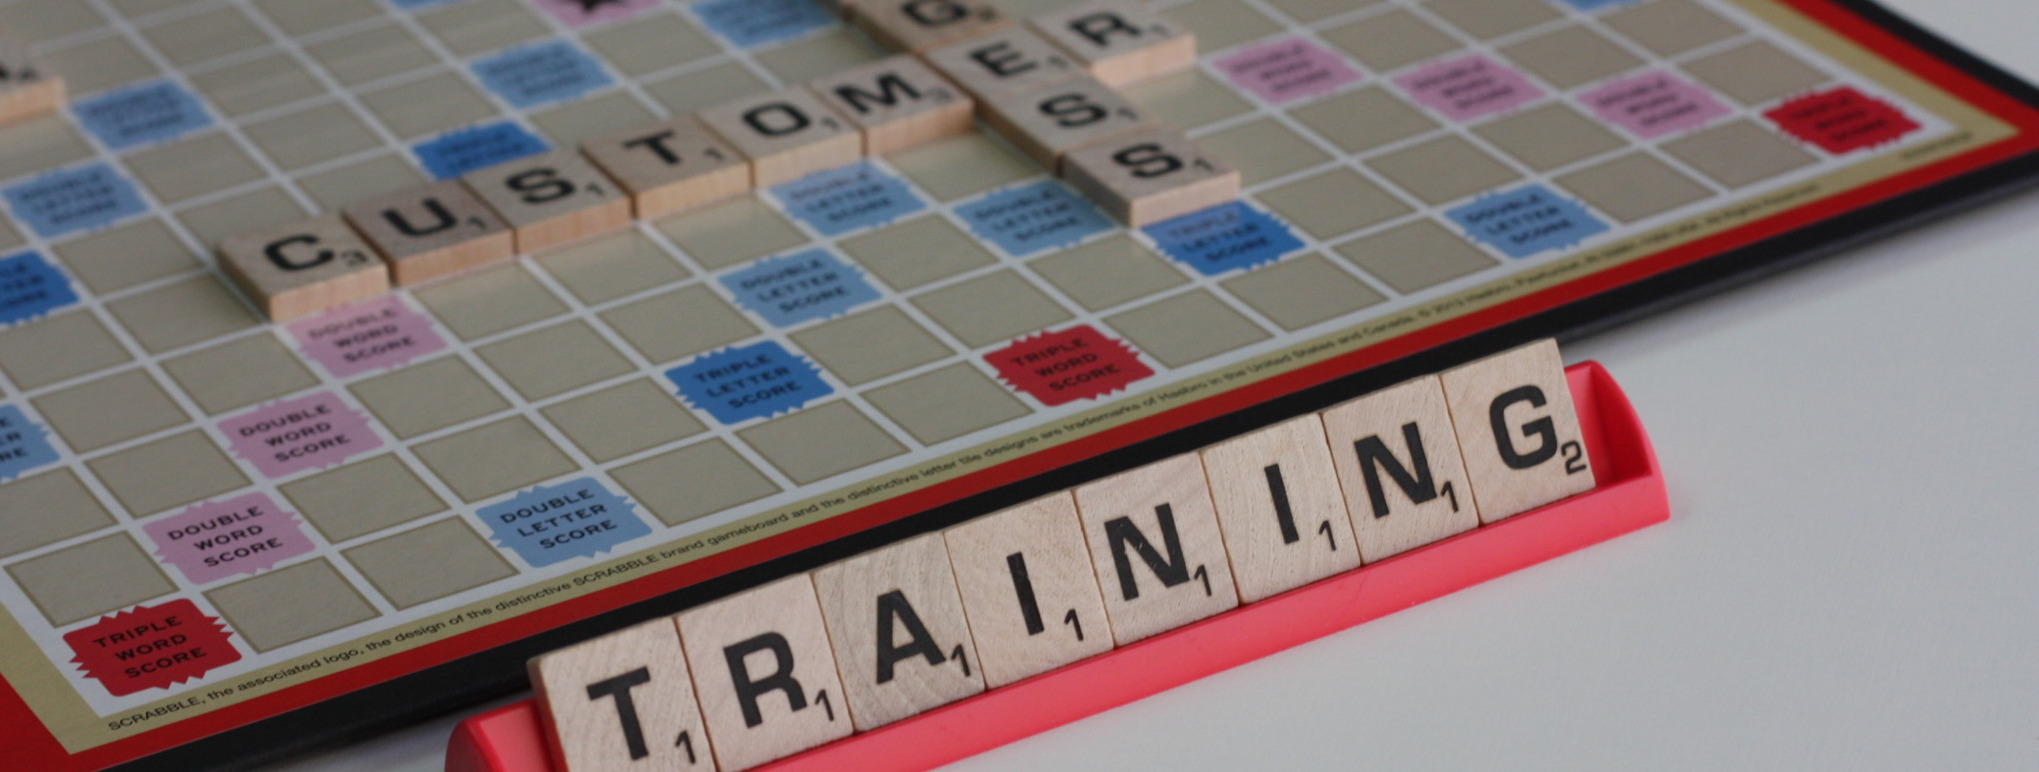 2015.11_Customer_Training_Scrabble_Hero.jpeg